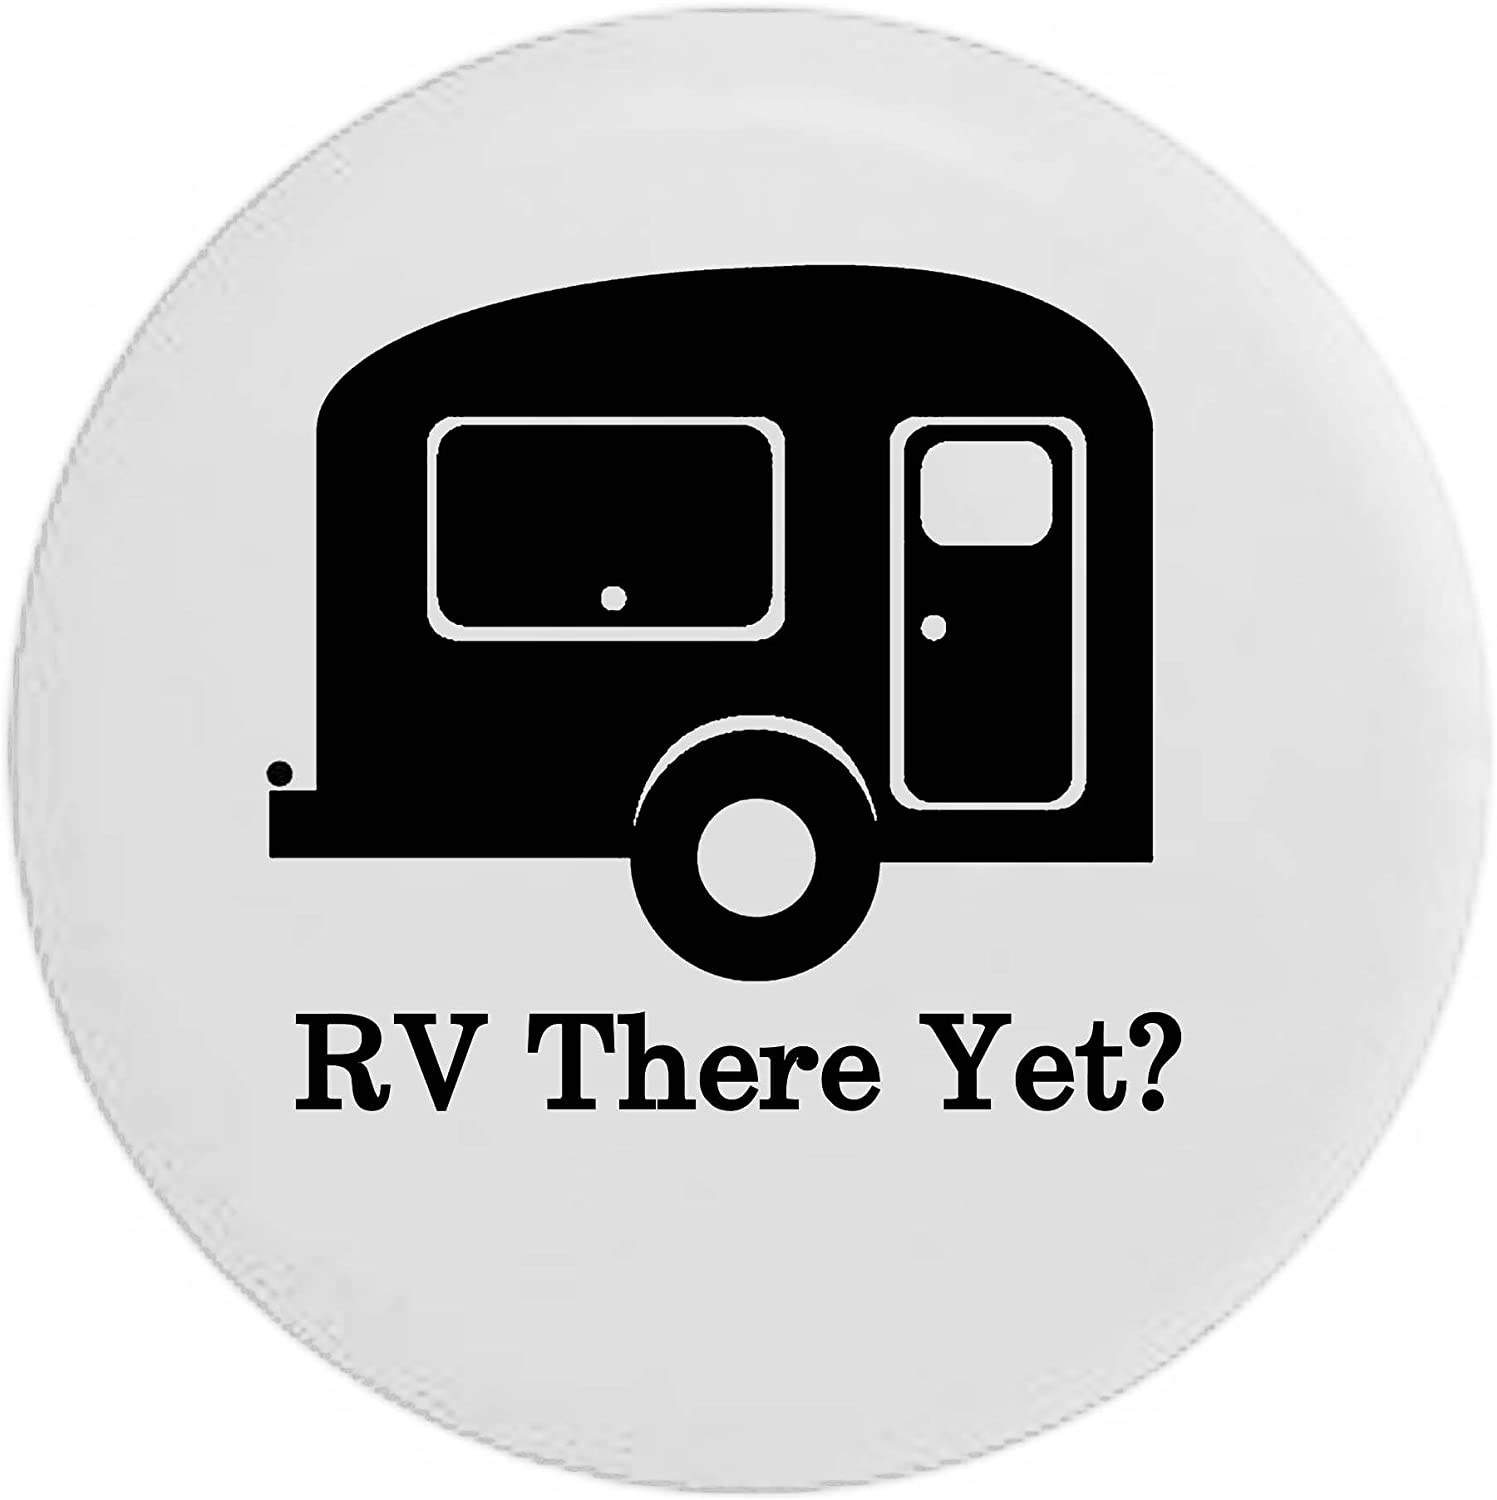 Pike Camo TravelCamper Trailer RV Spare Tire Cover OEM Vinyl Black 27.5 in RV There Yet